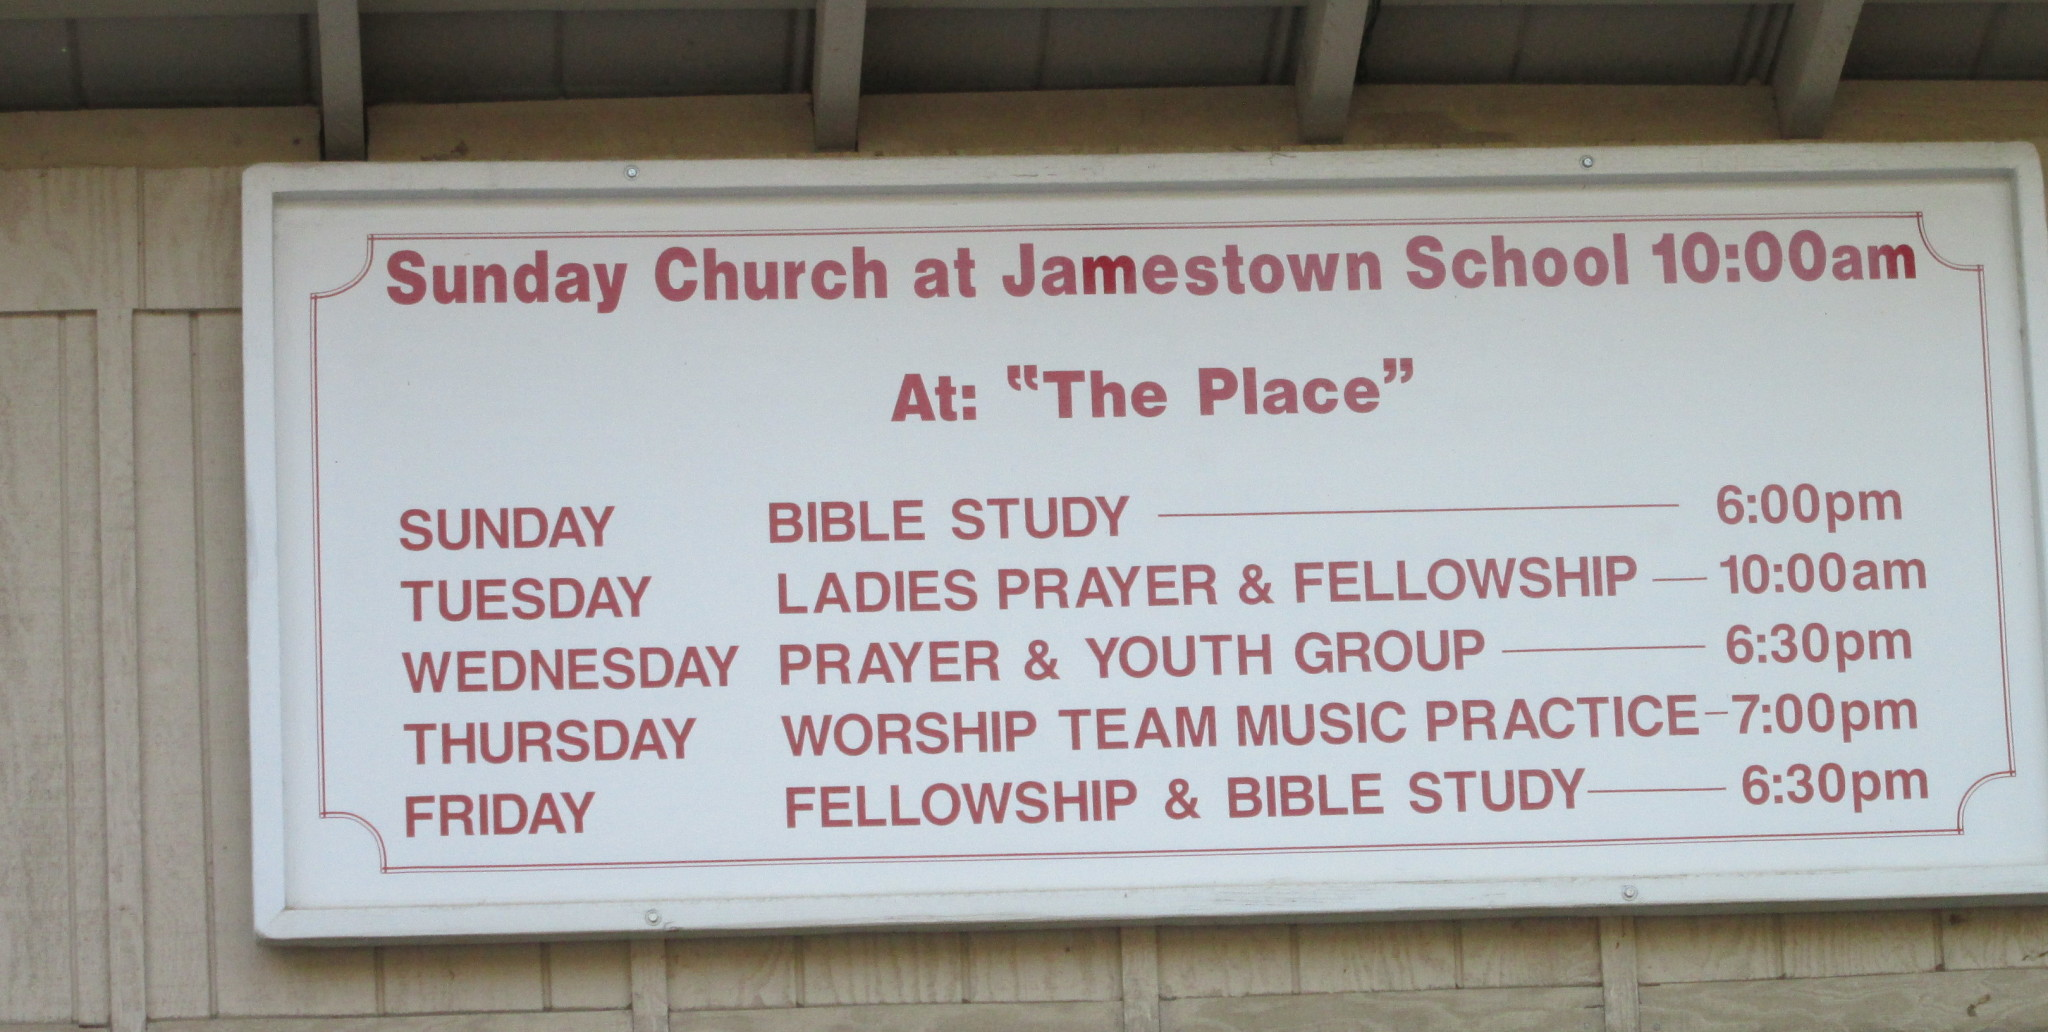 Our Weekly Worship & Fellowship Schedule